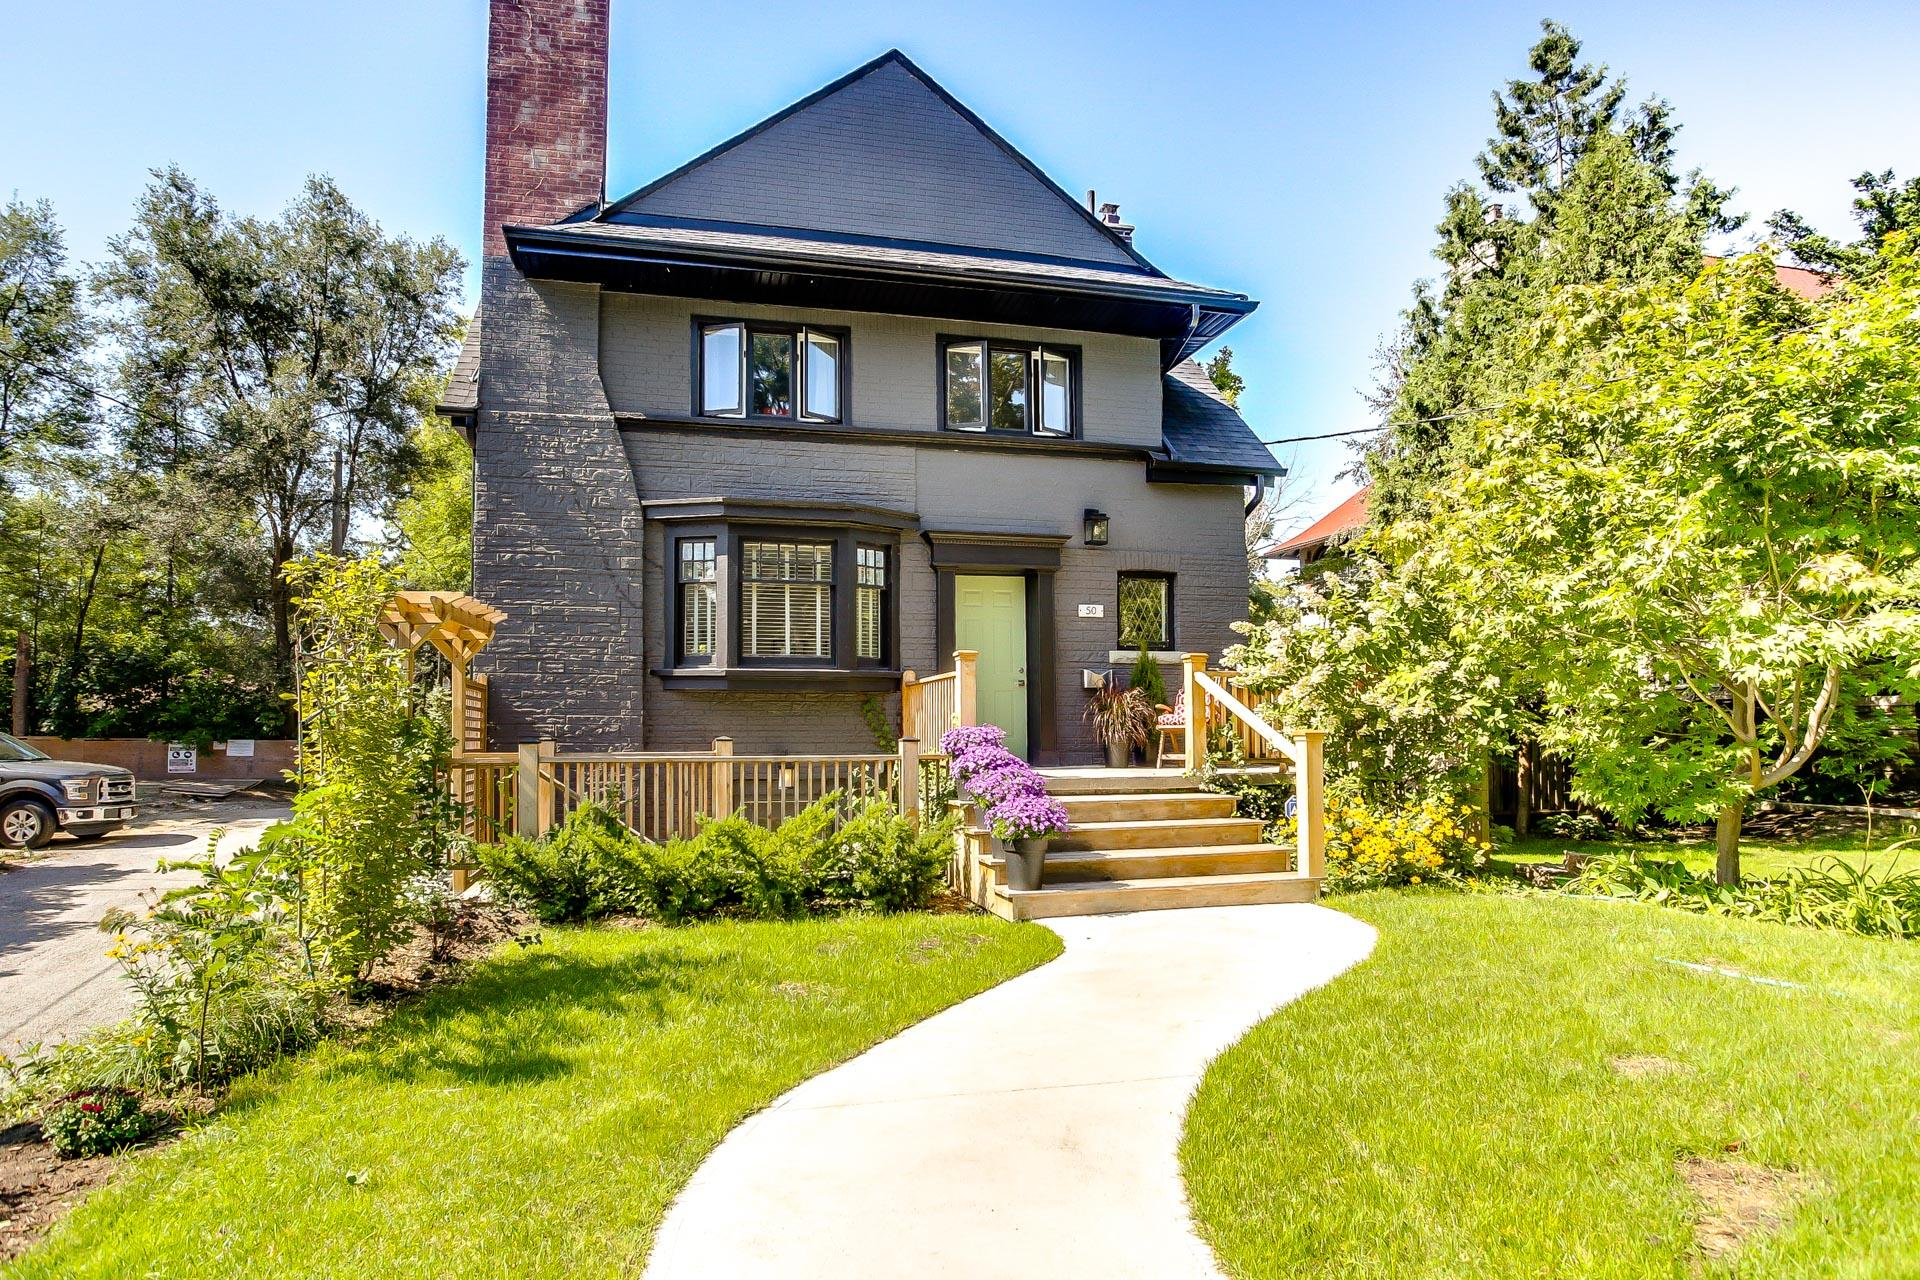 High Park homes for sale